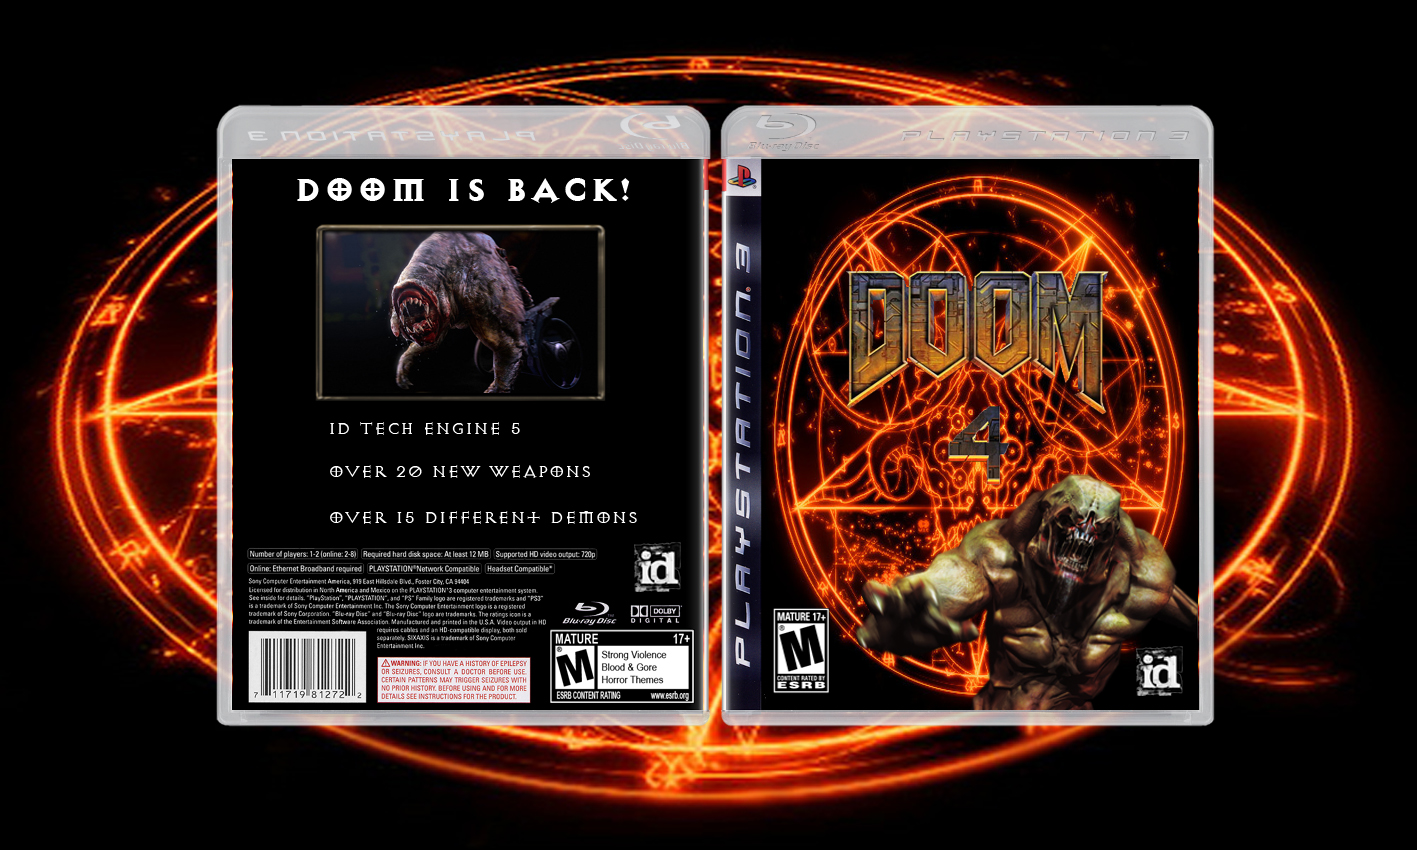 Doom 4 Ps3 Cover Concept Image EVILWEVIL Mod DB